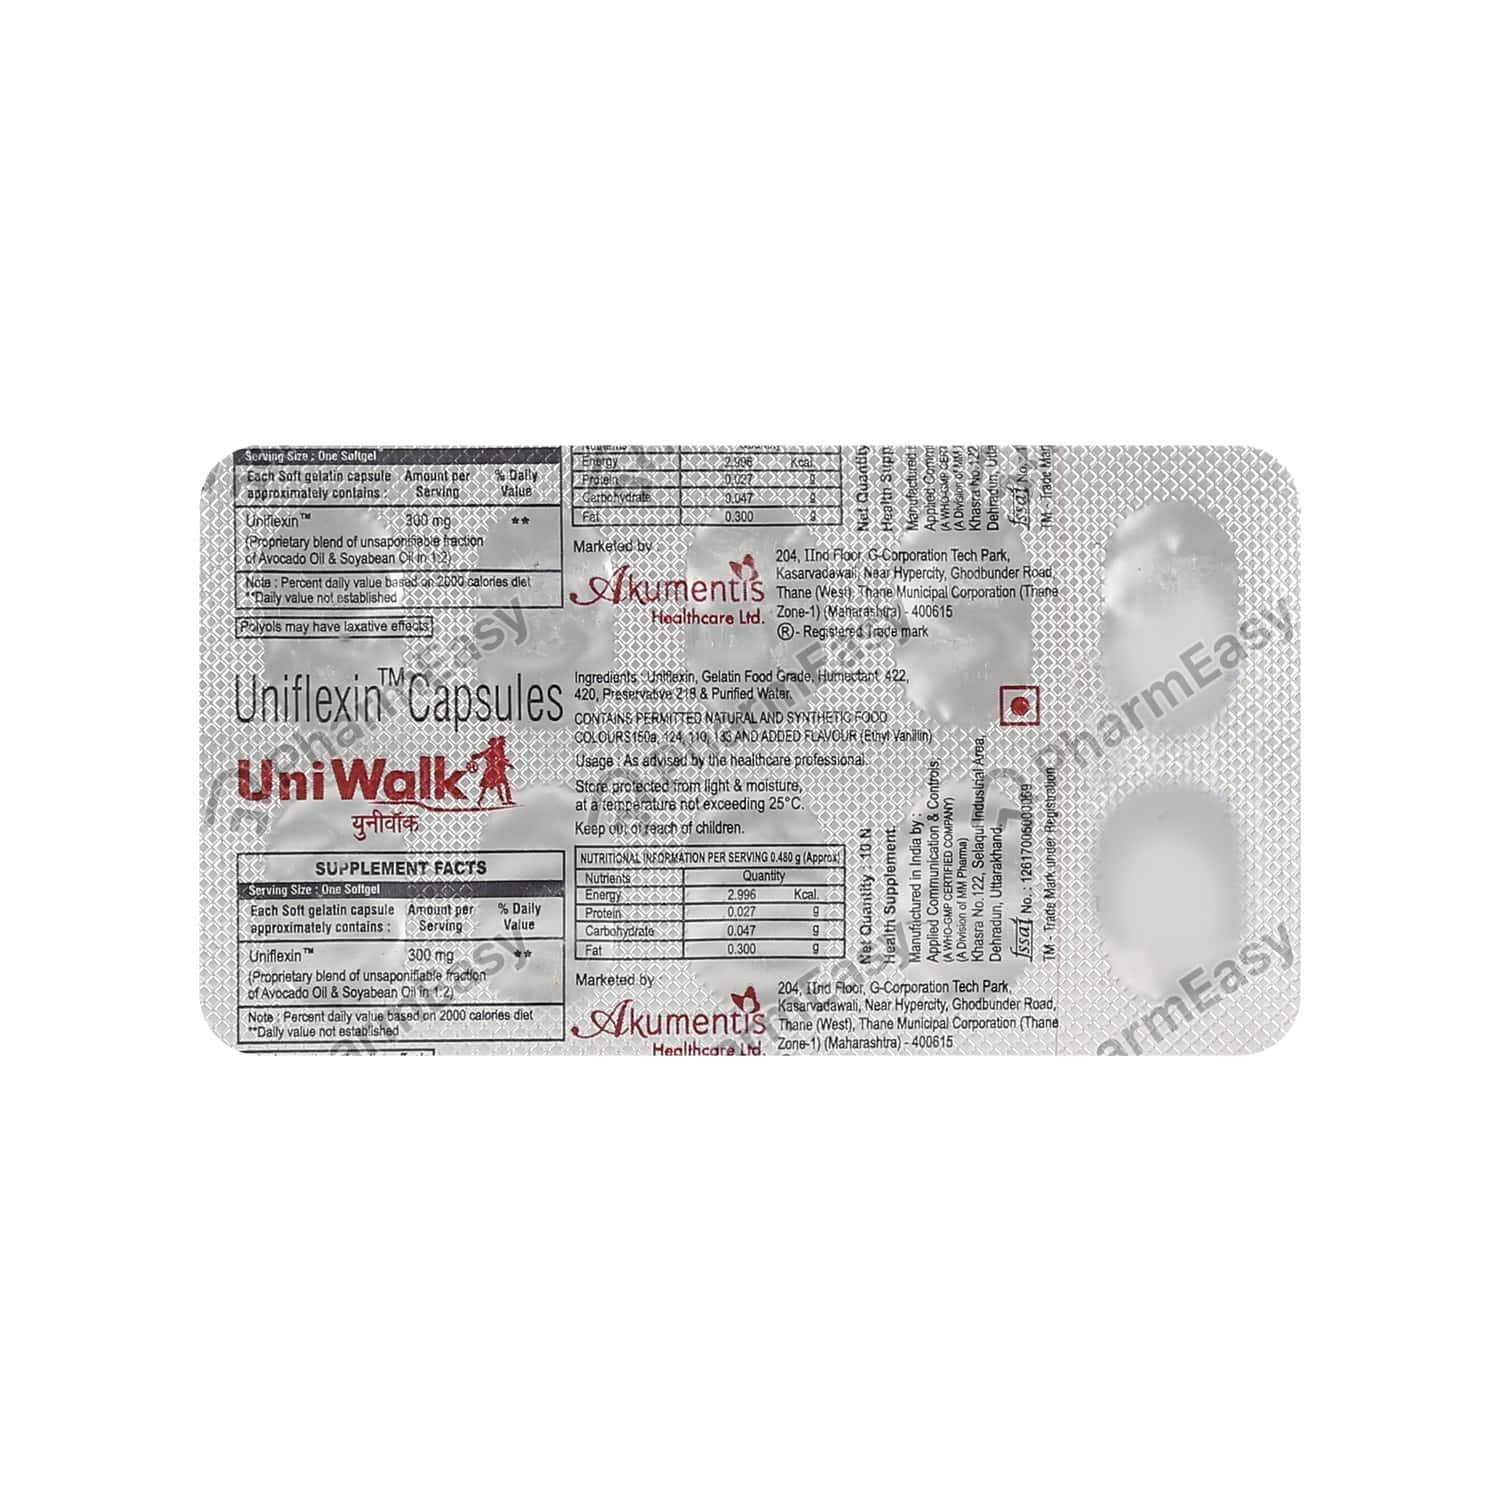 Uniwalk 300mg Strip Of 10 Capsules